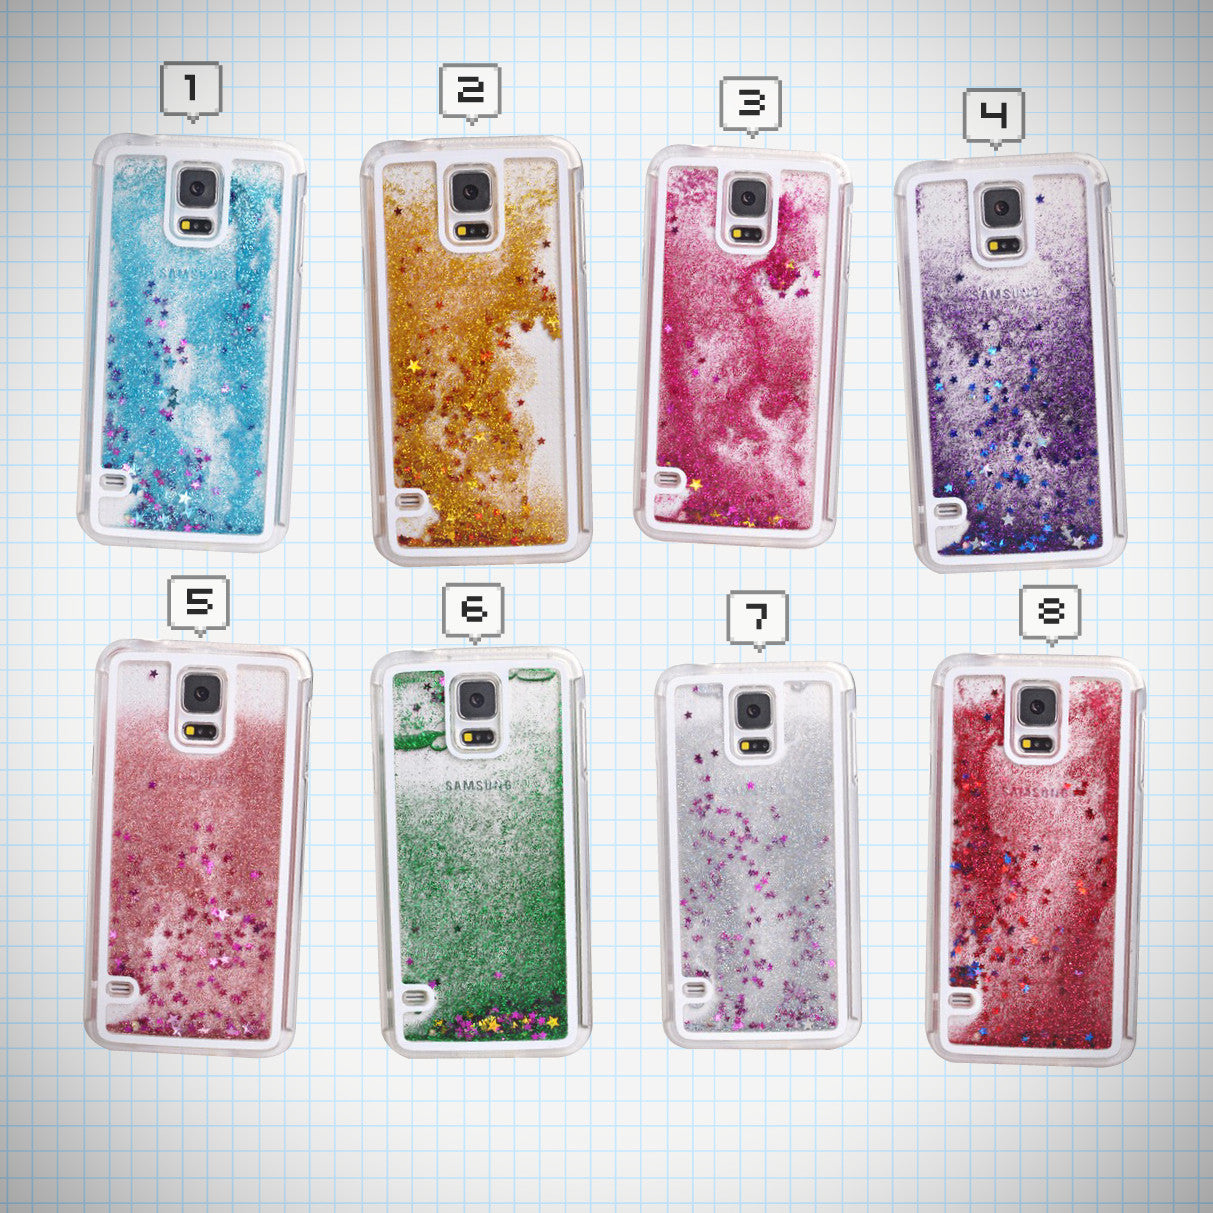 Waterfall Glitter Star Phone Case (Samsung Version) - Ice Cream Cake